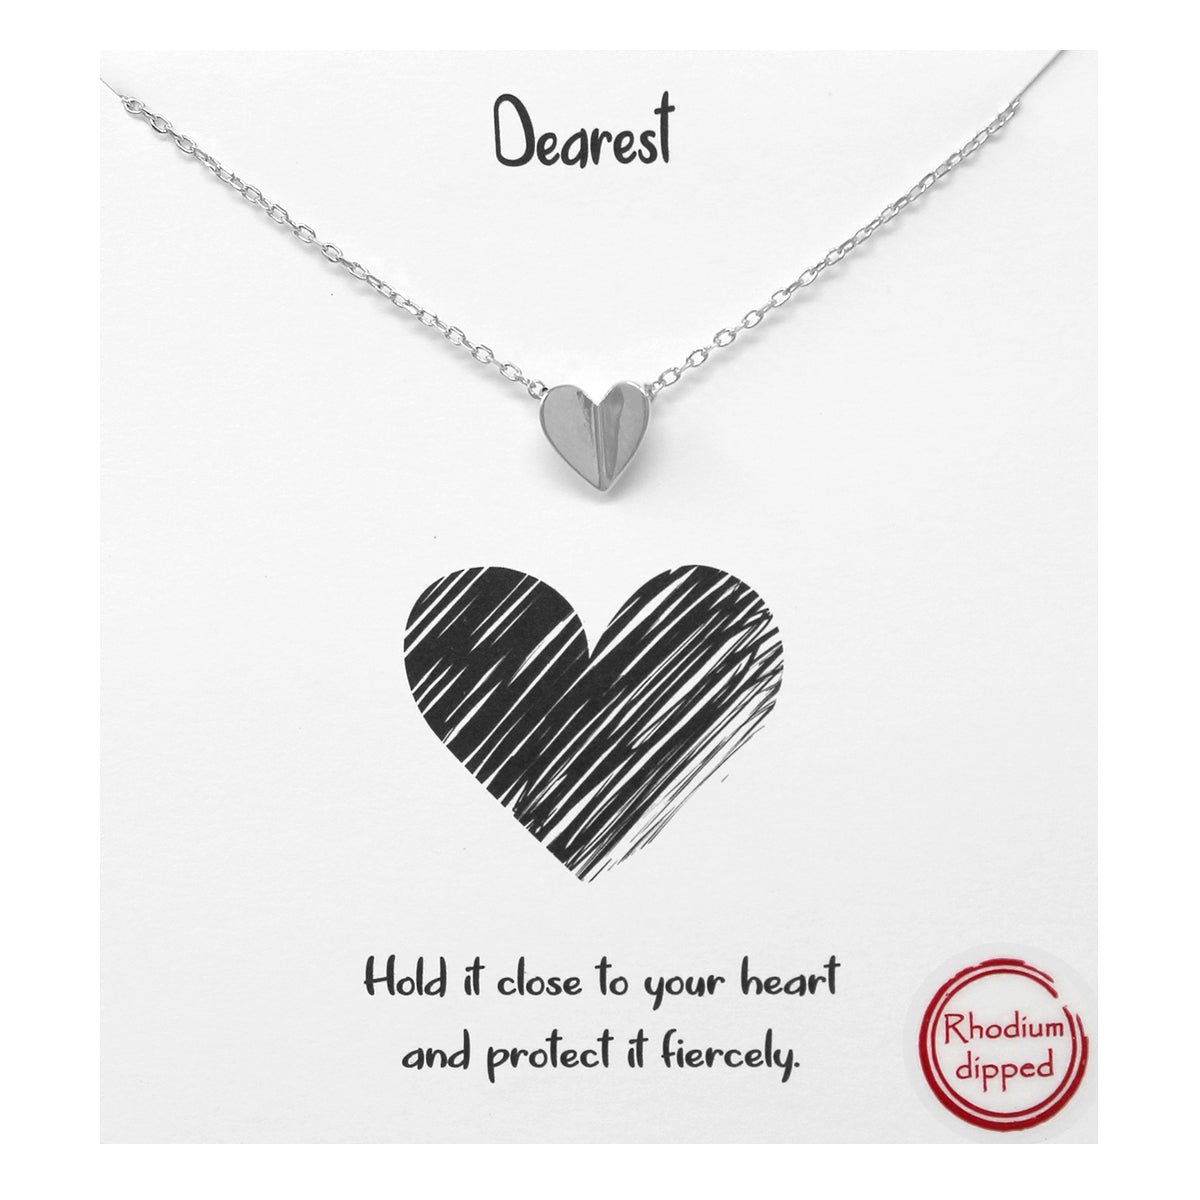 Tell Your Story: Dearest Folded Heart Pendant Simple Chain Short Necklace